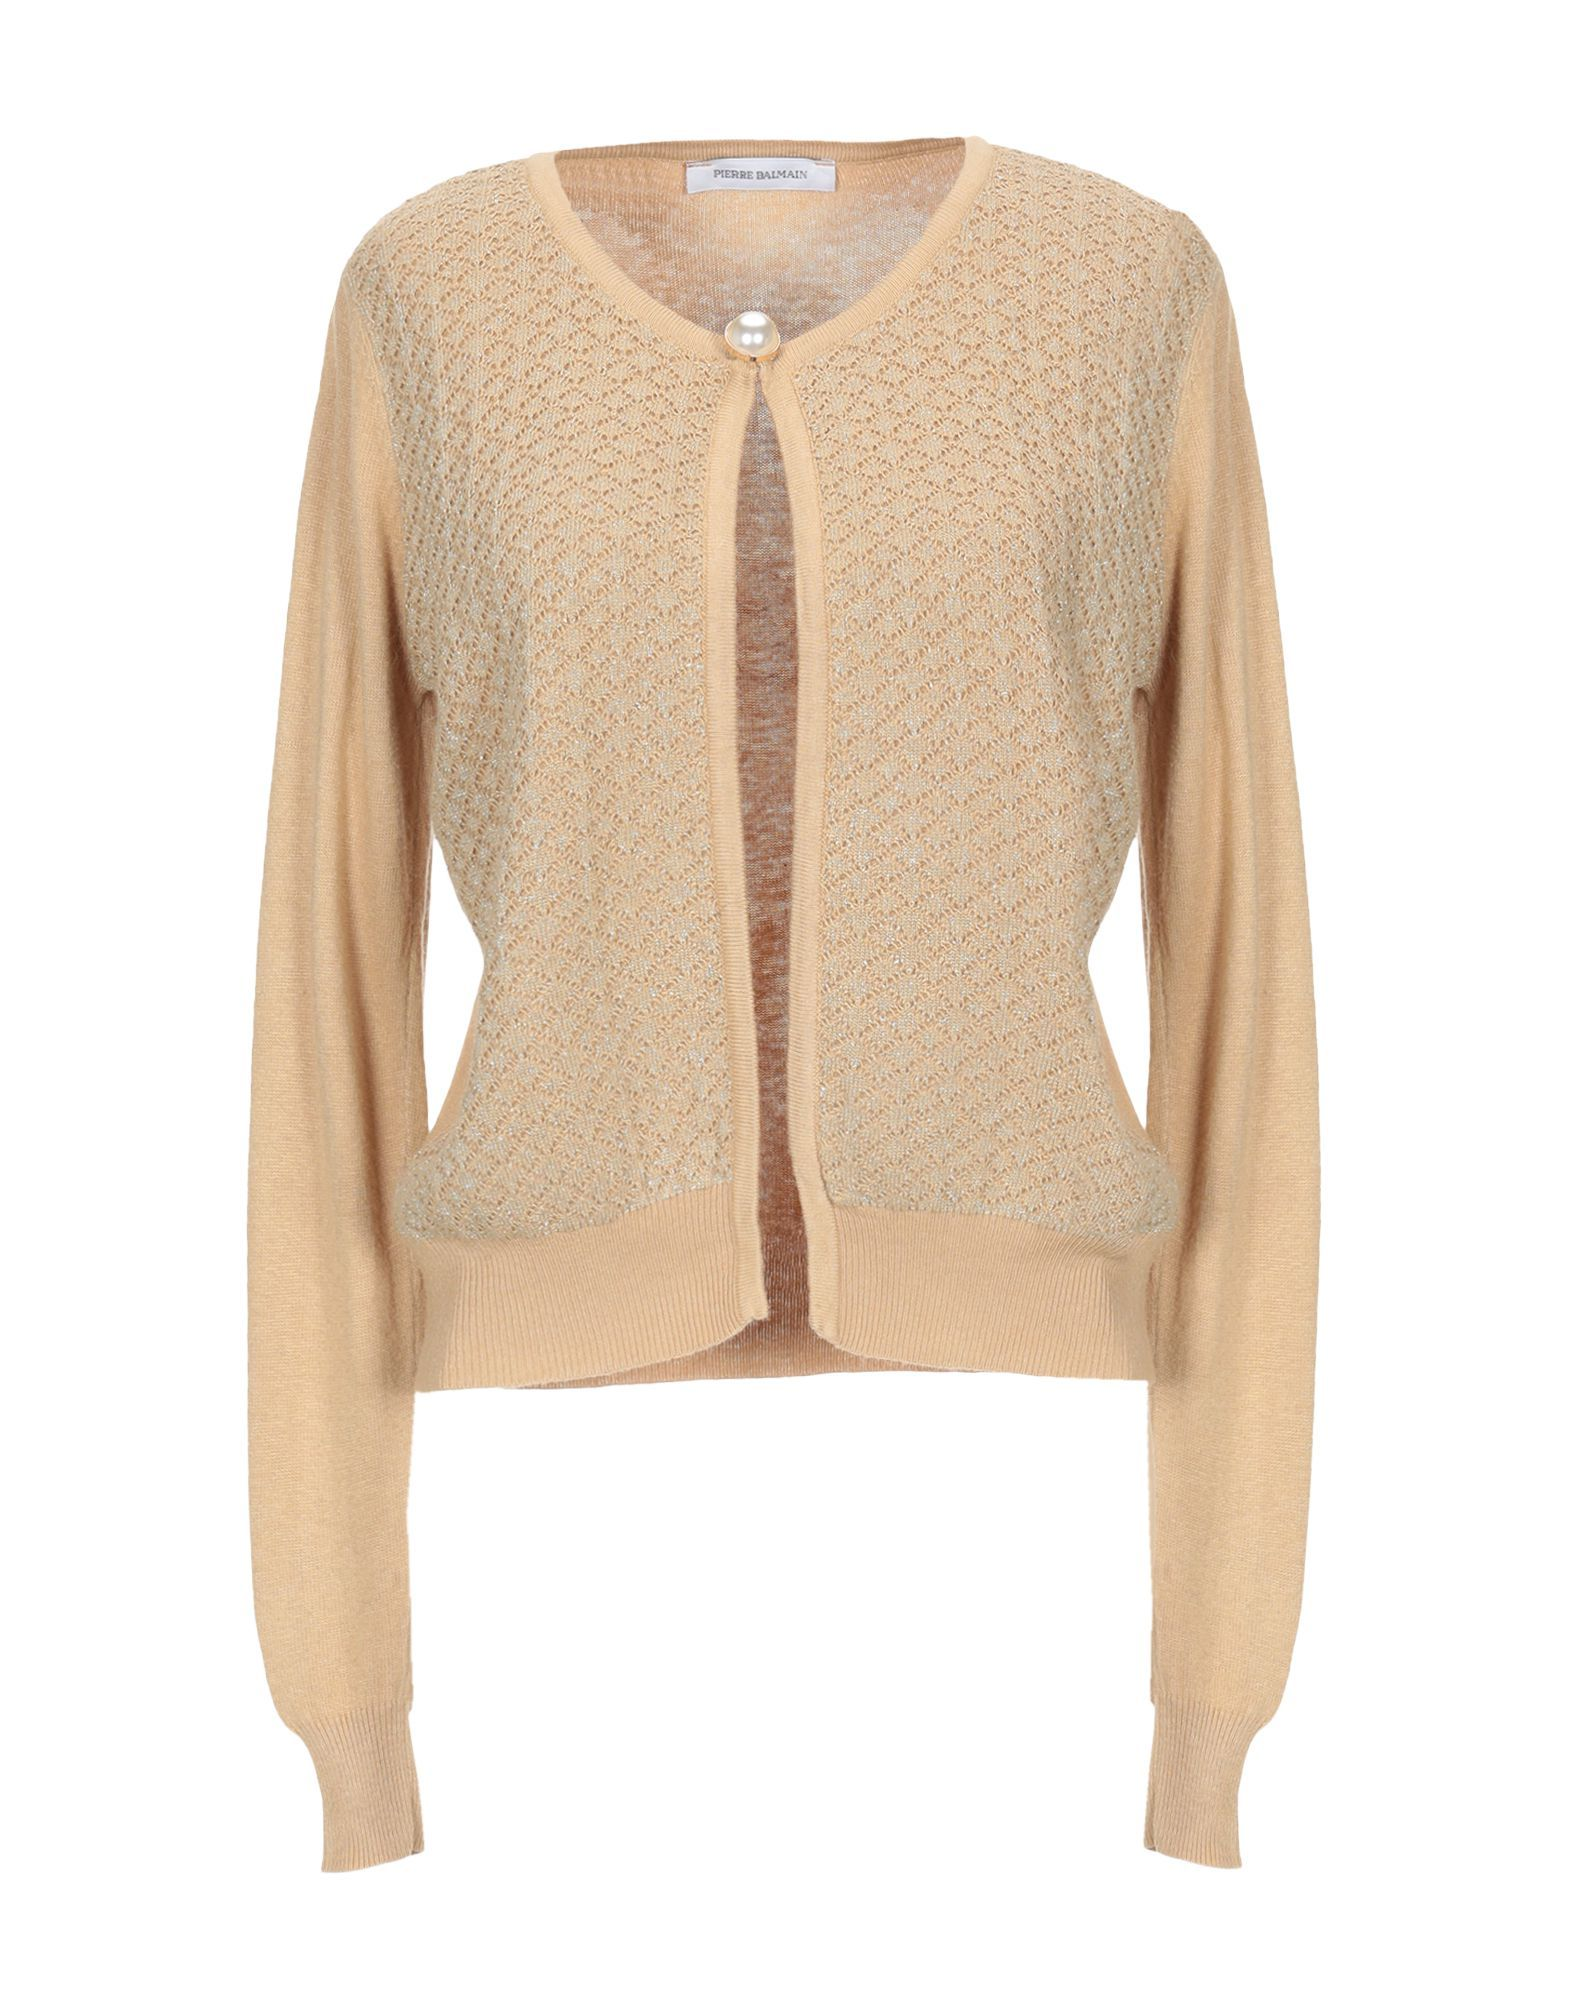 Pierre Balmain Sand Knit Cardigan With Brooch Detail